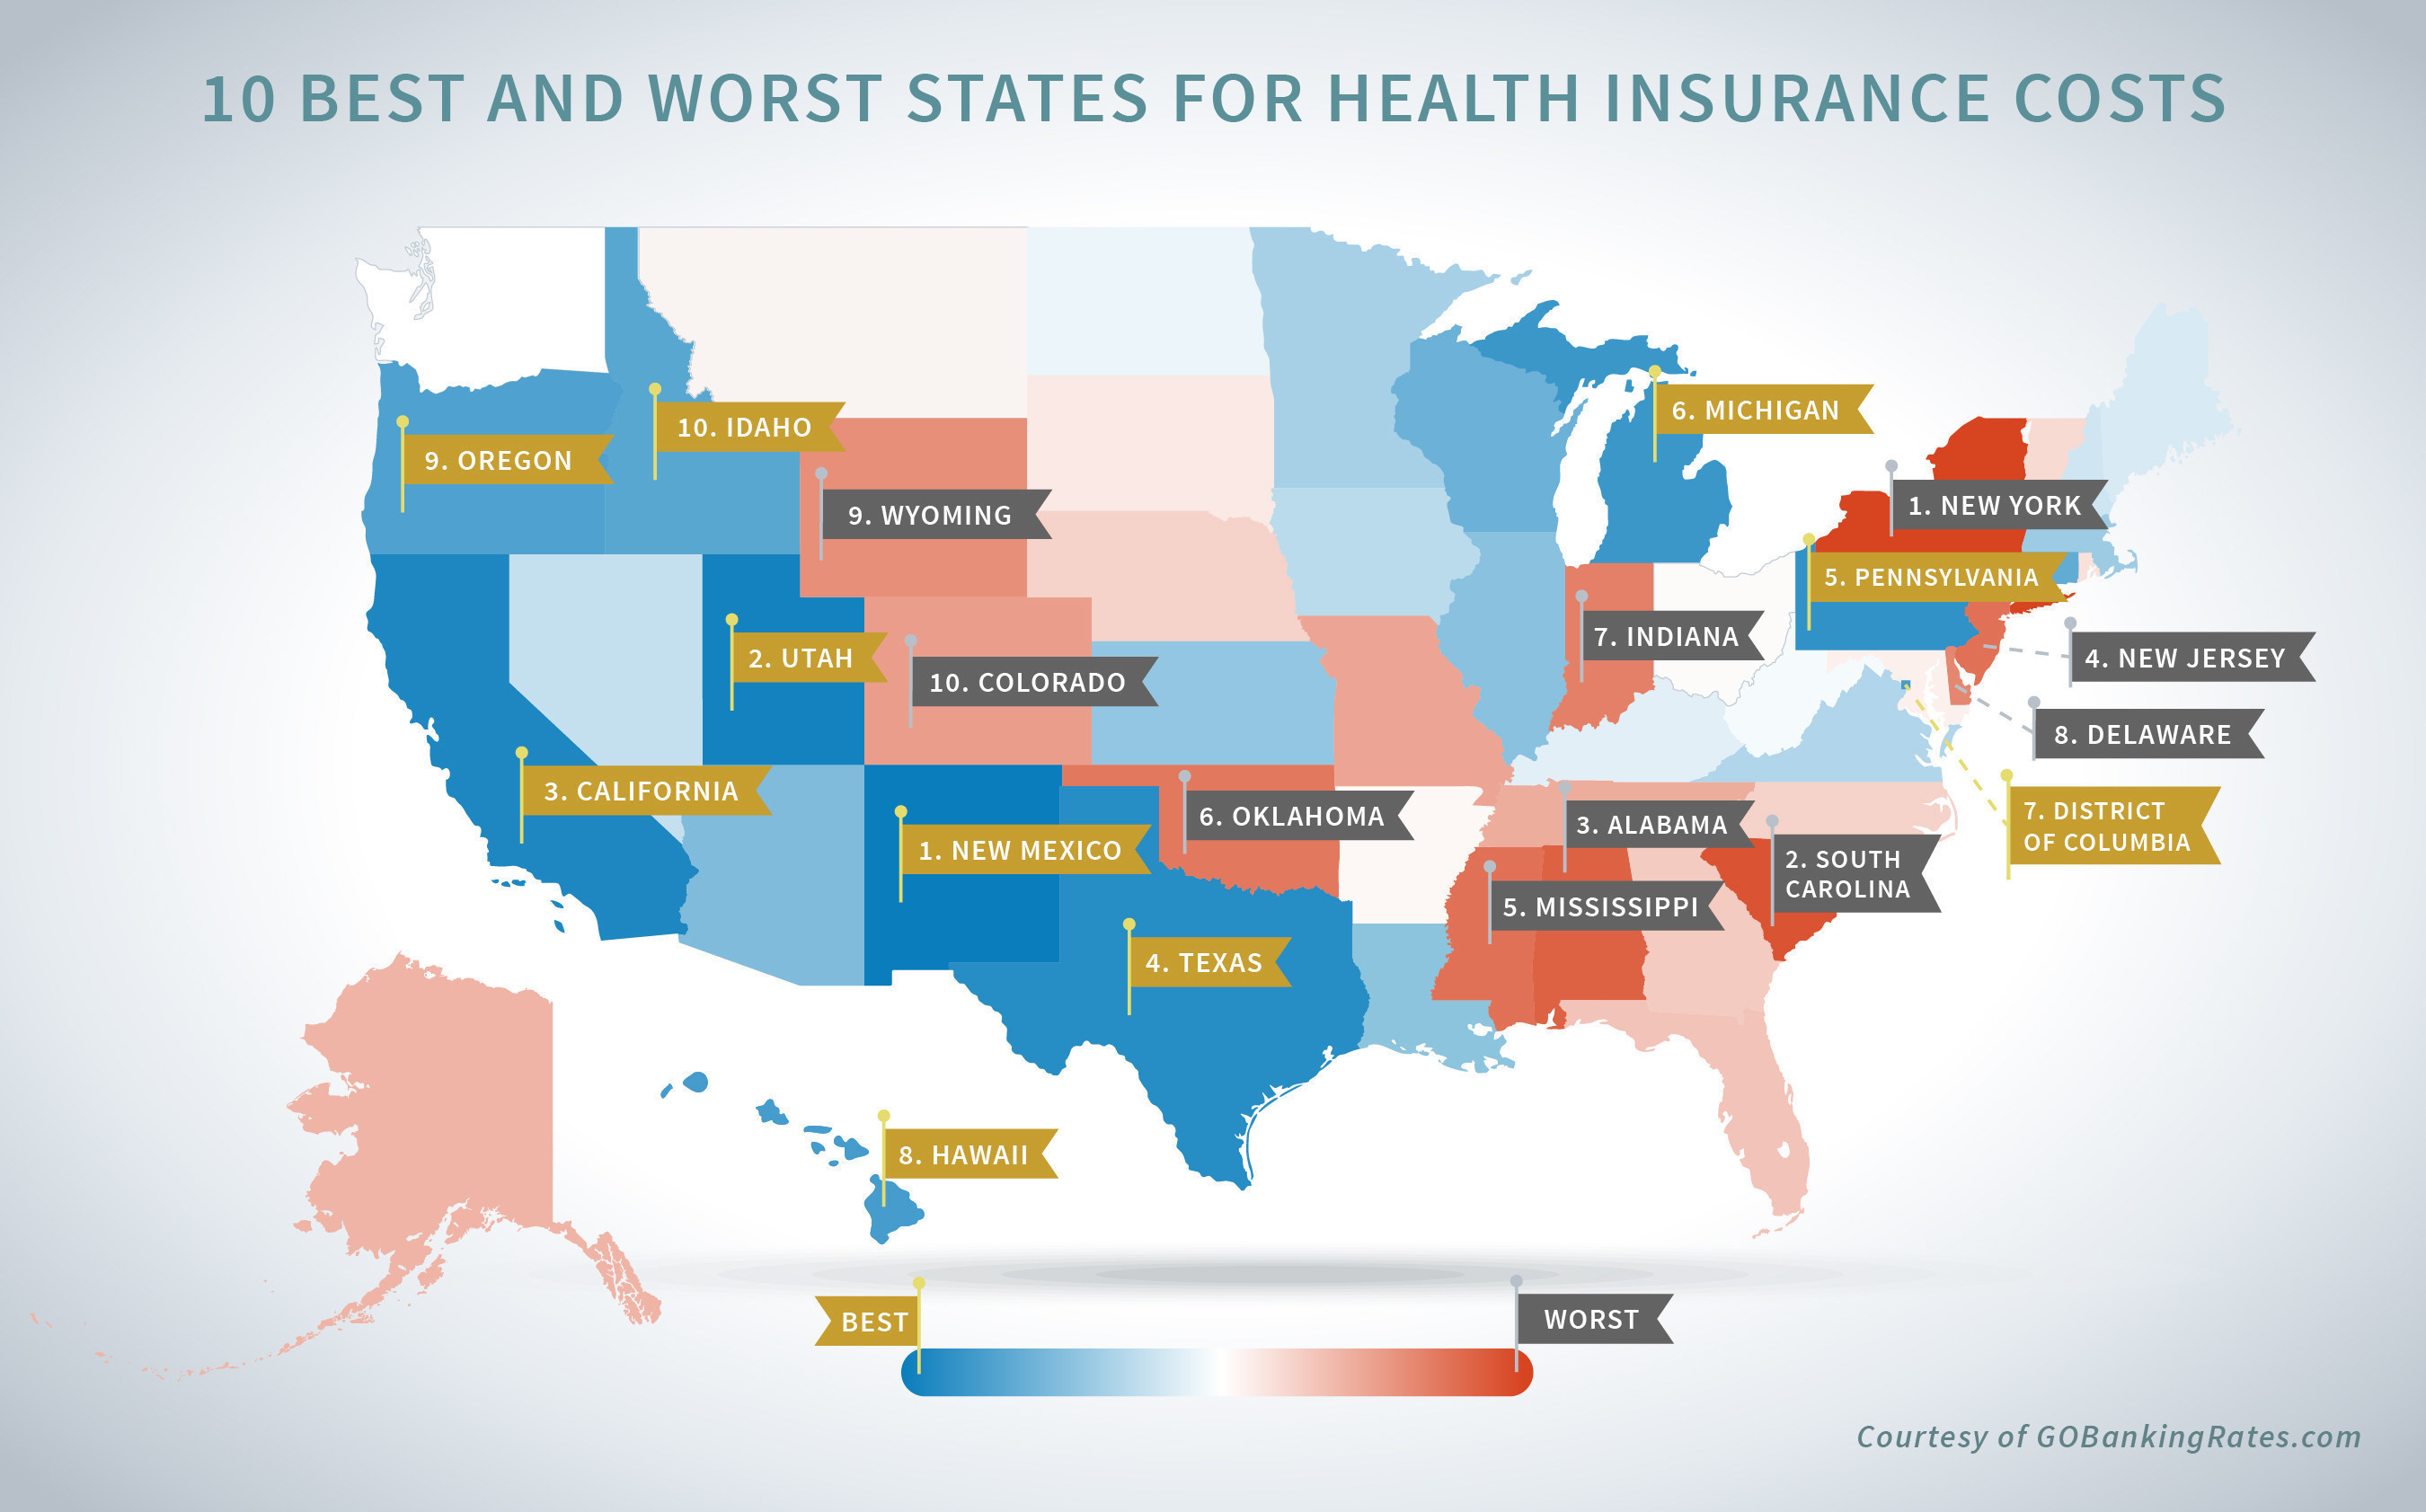 GOBankingRates study finds the 10 best and worst states for health insurance costs.